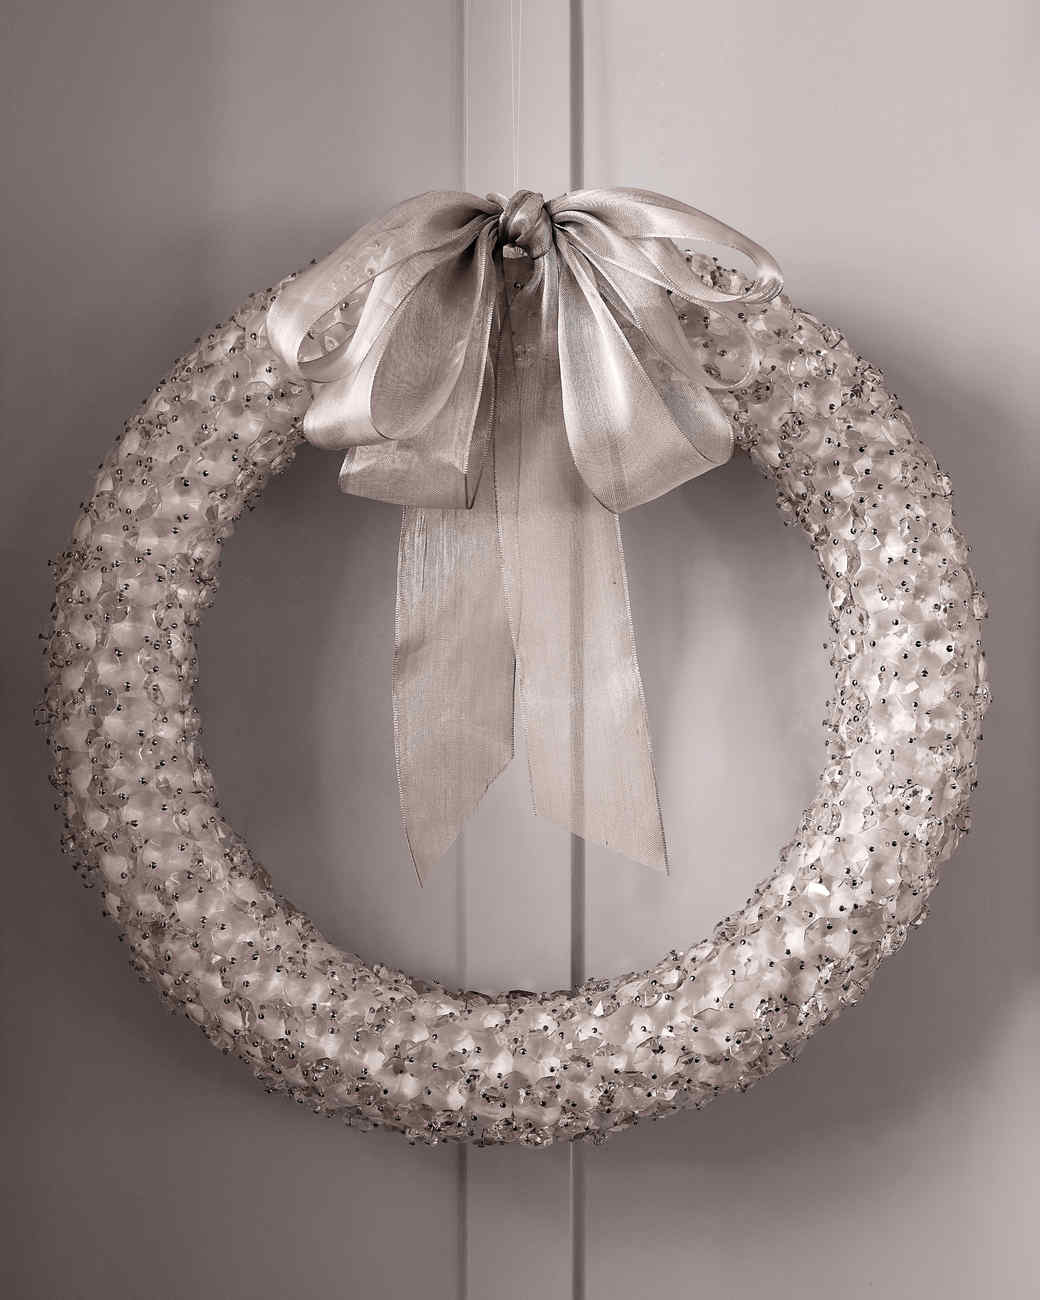 crystal-wreath-20852-md110592.jpg